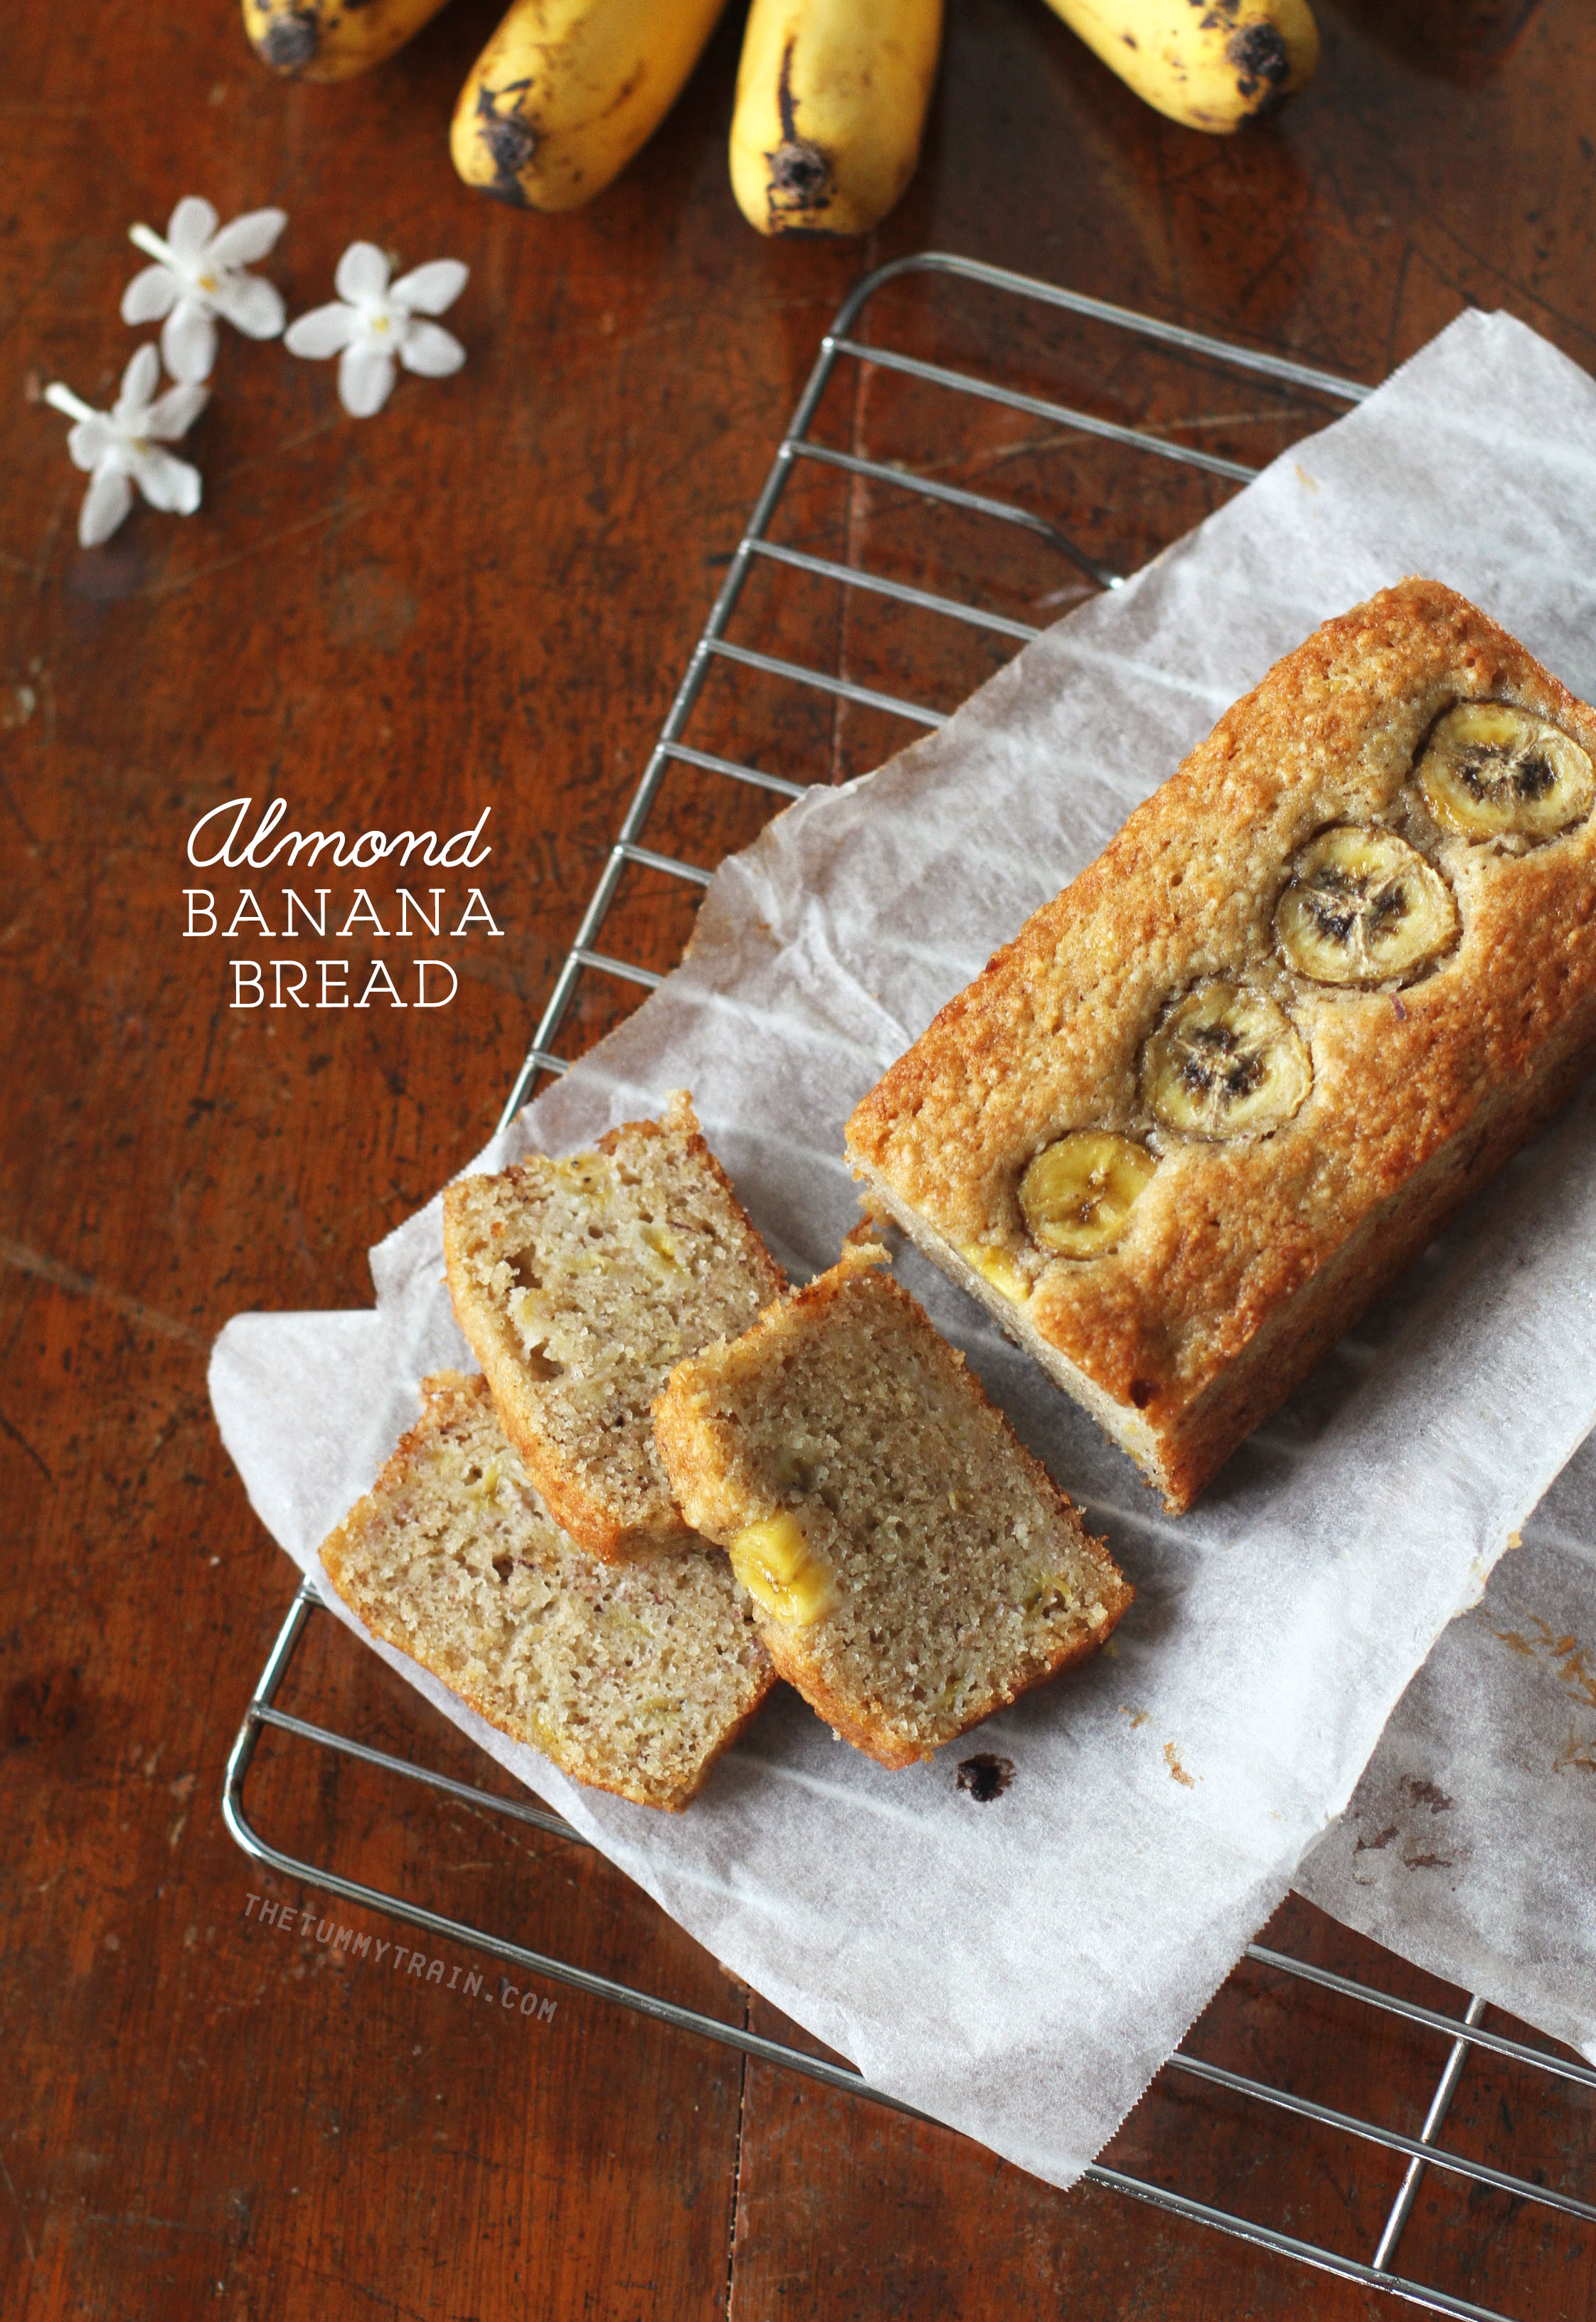 Almond Banana Bread 1 - Of course you need another banana bread recipe!